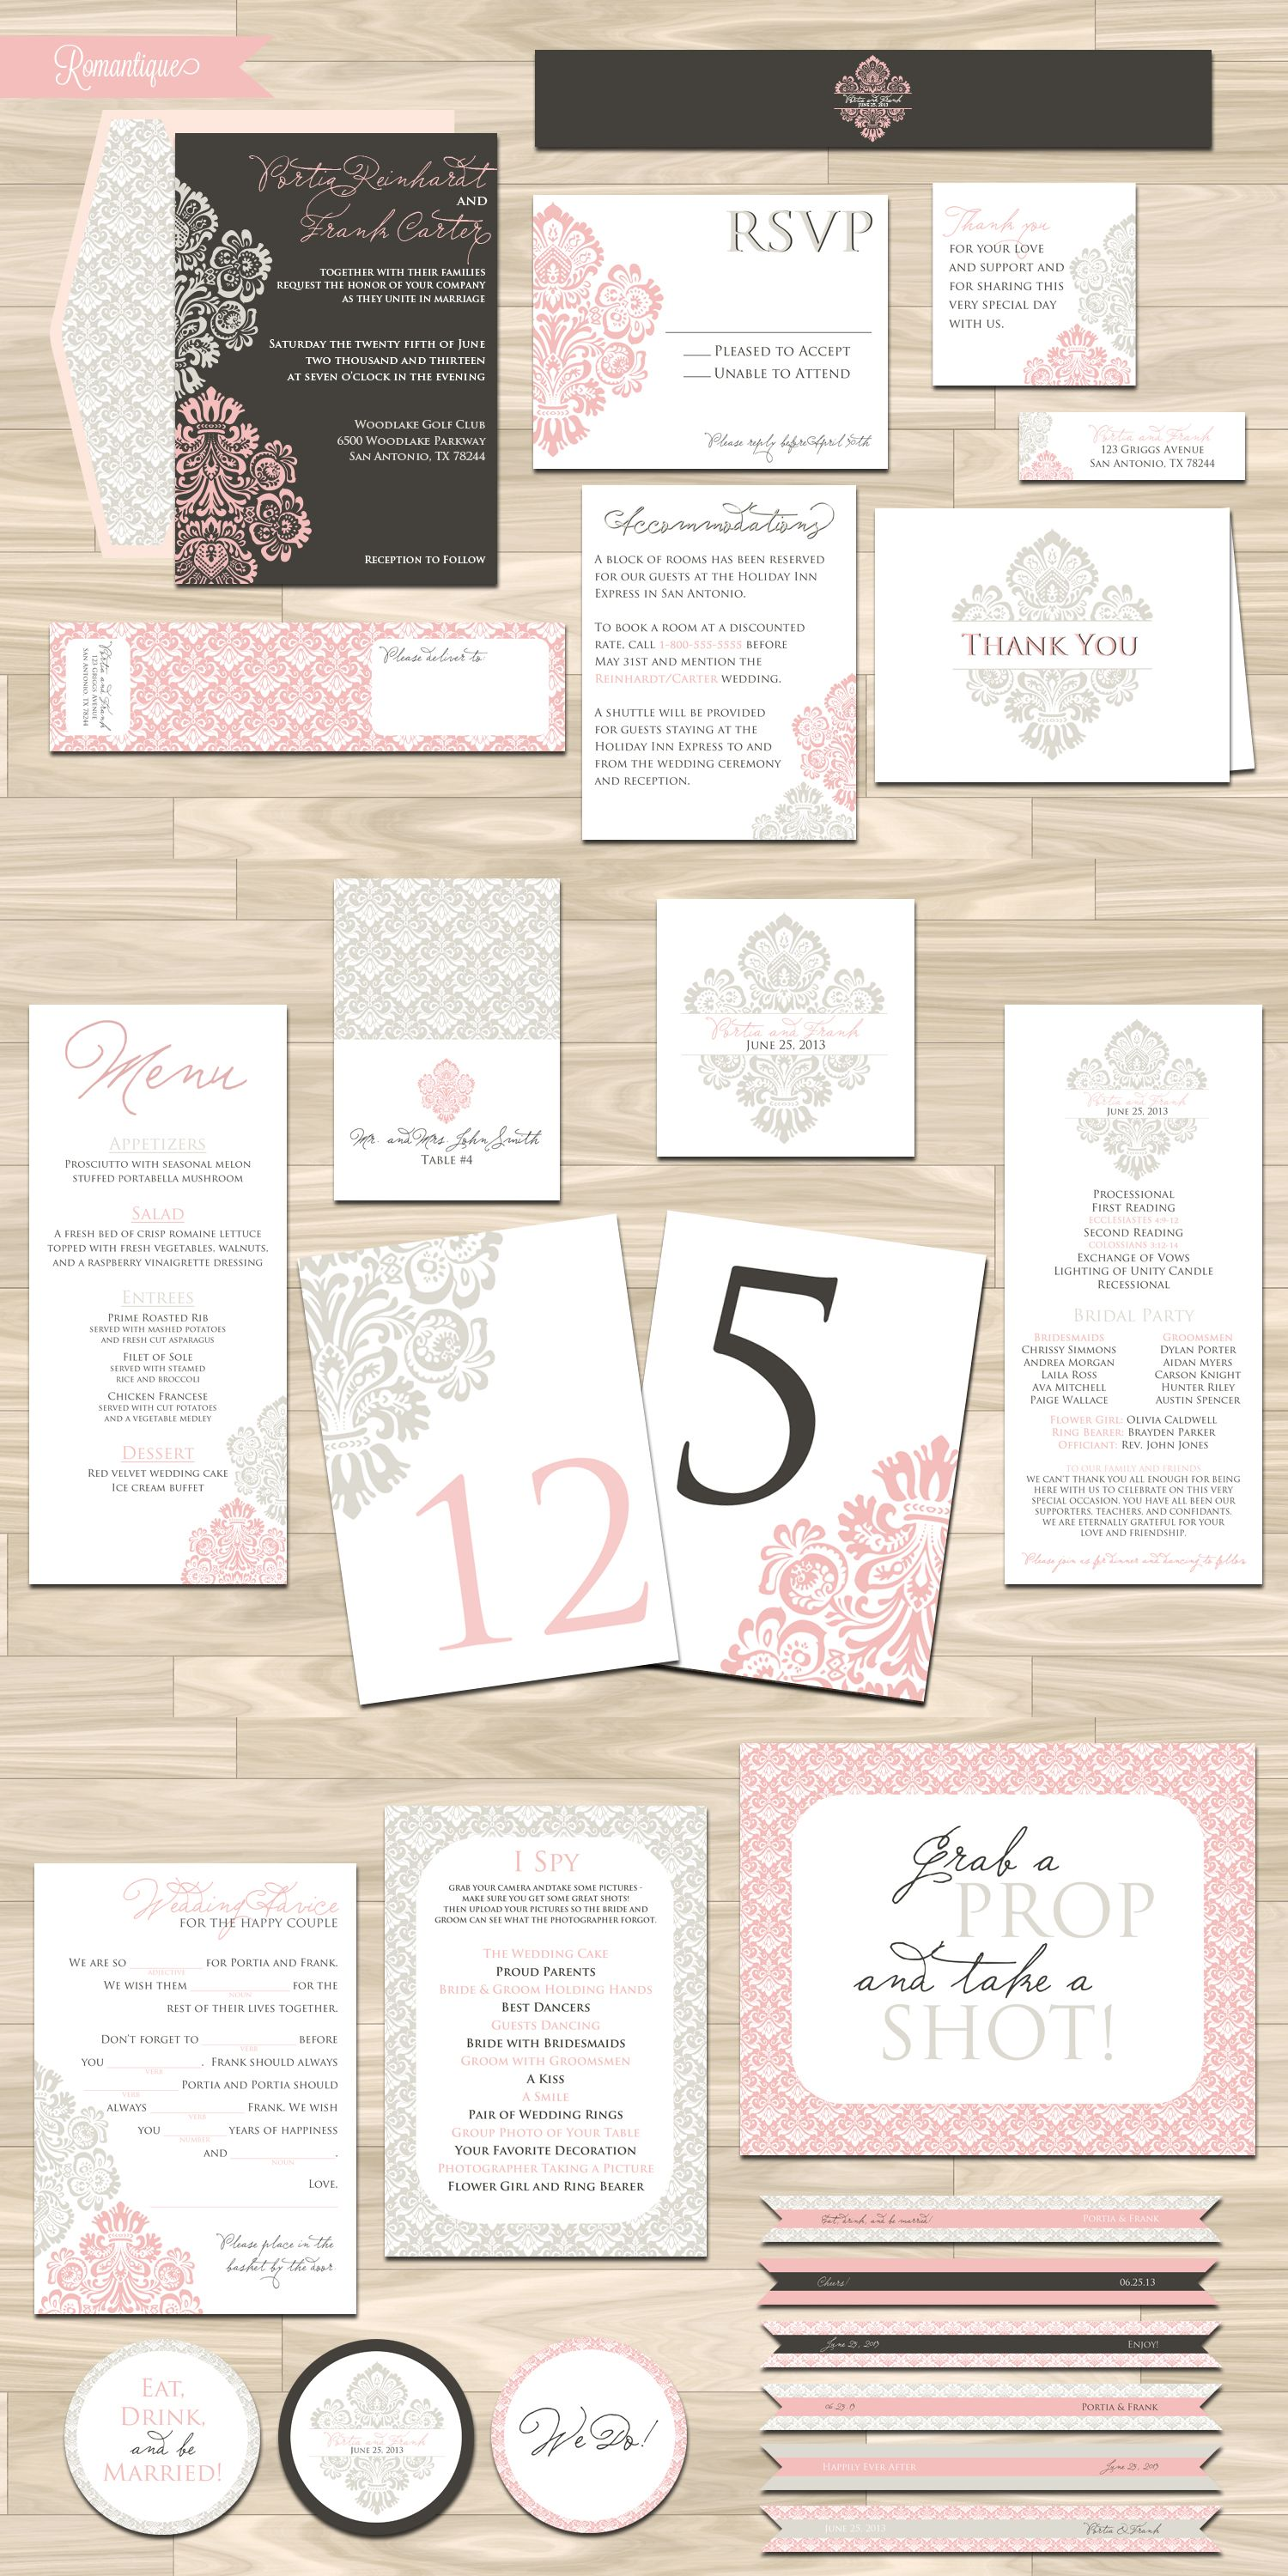 Wedding Invitation and RSVP Card (Romantique) - Digital File ...